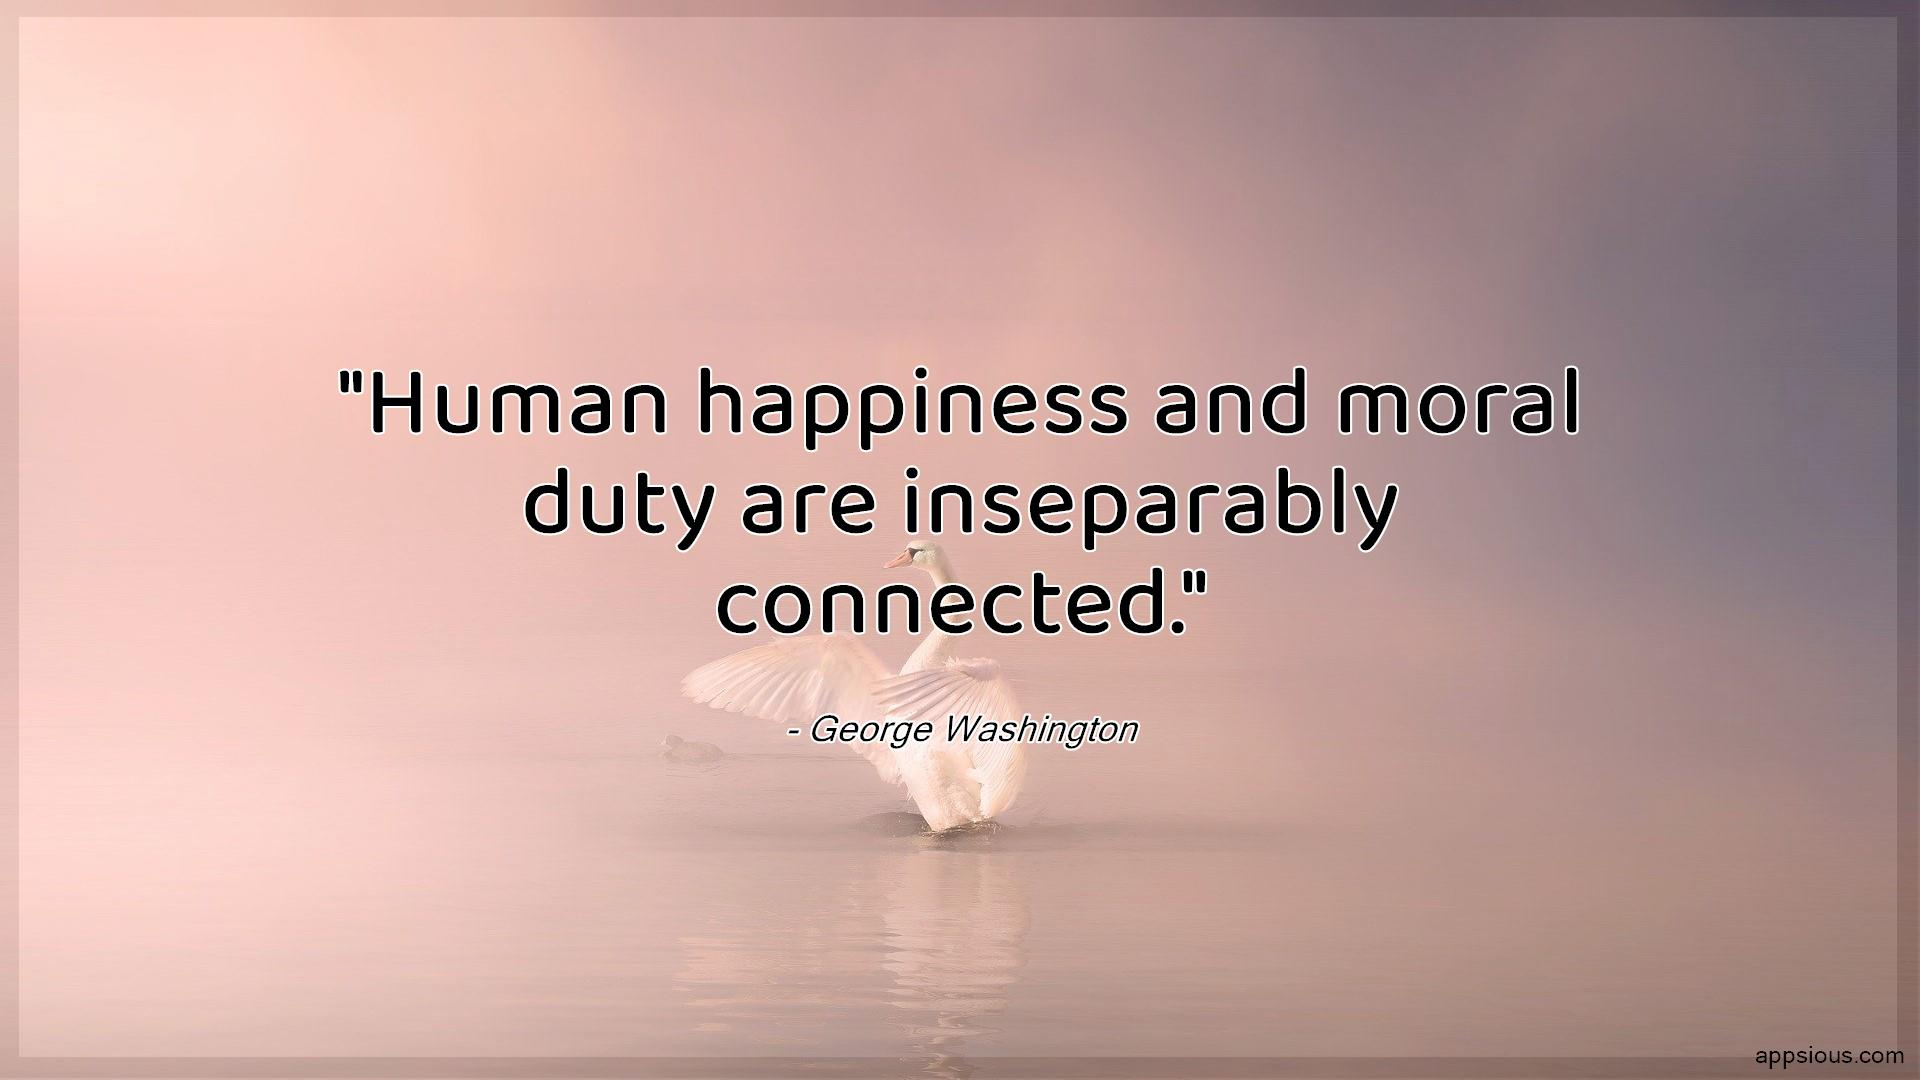 Human happiness and moral duty are inseparably connected.